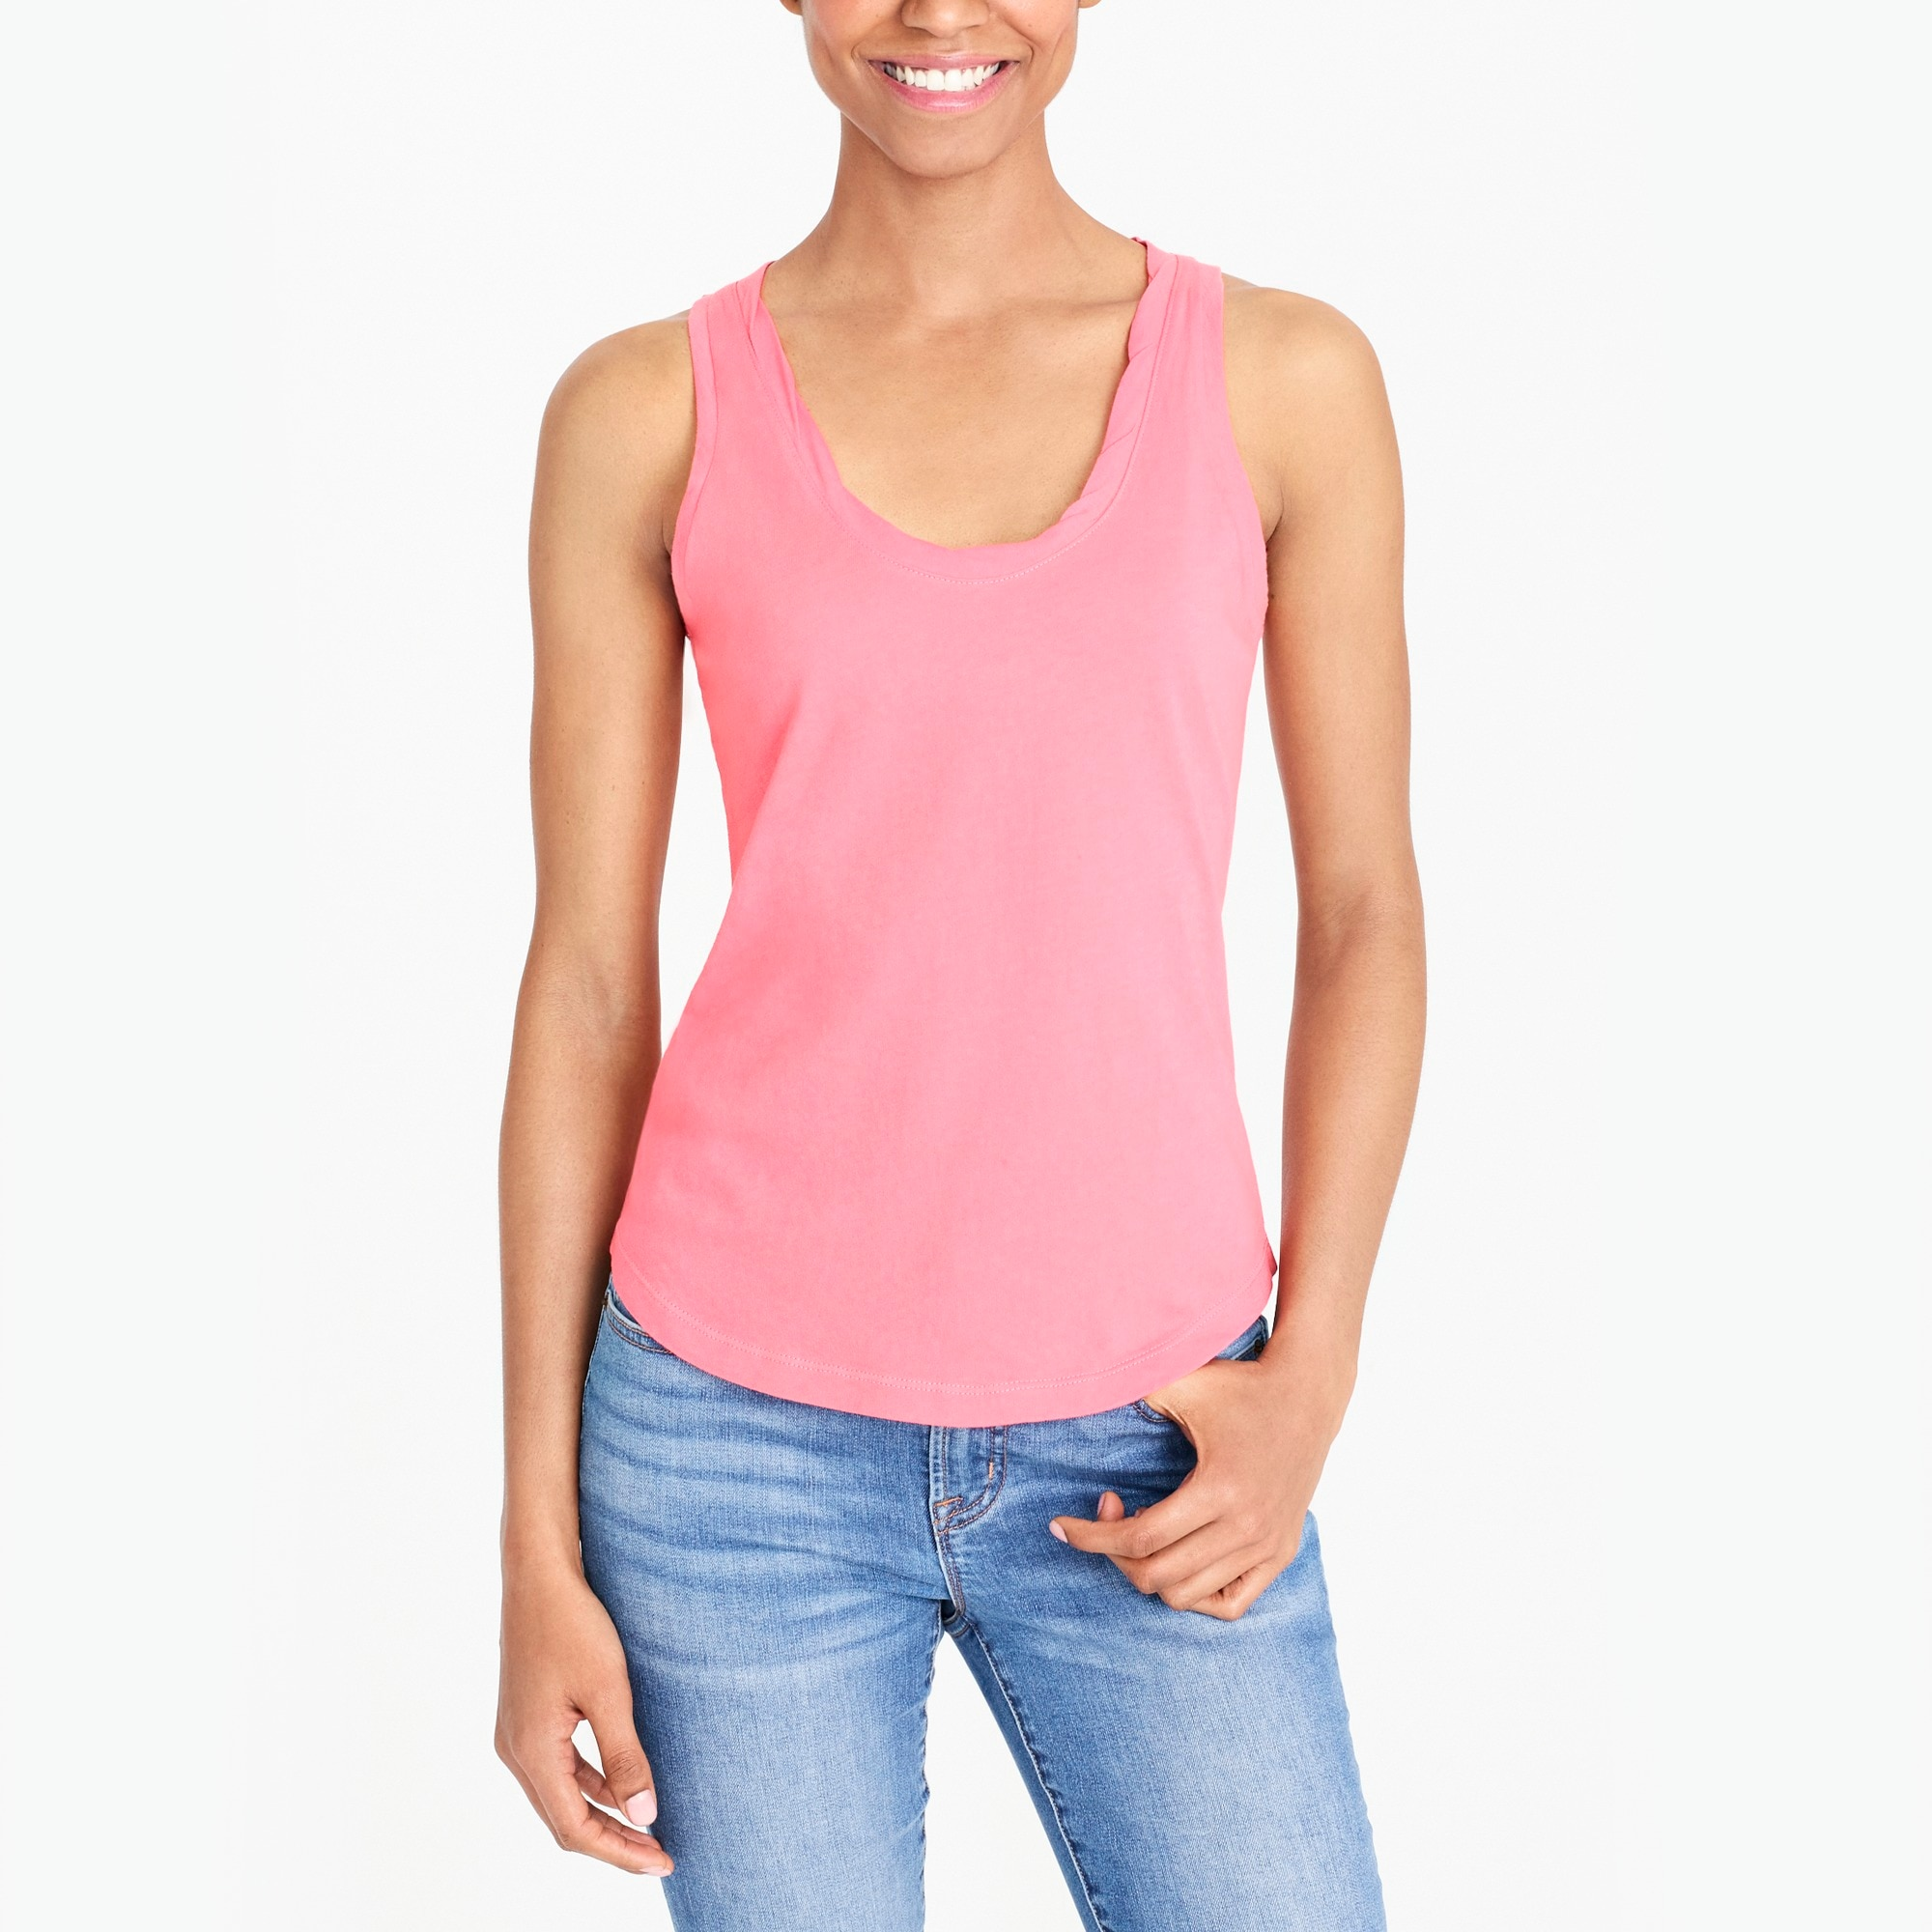 j.crew mercantile tissue tank top : factorywomen sleeveless